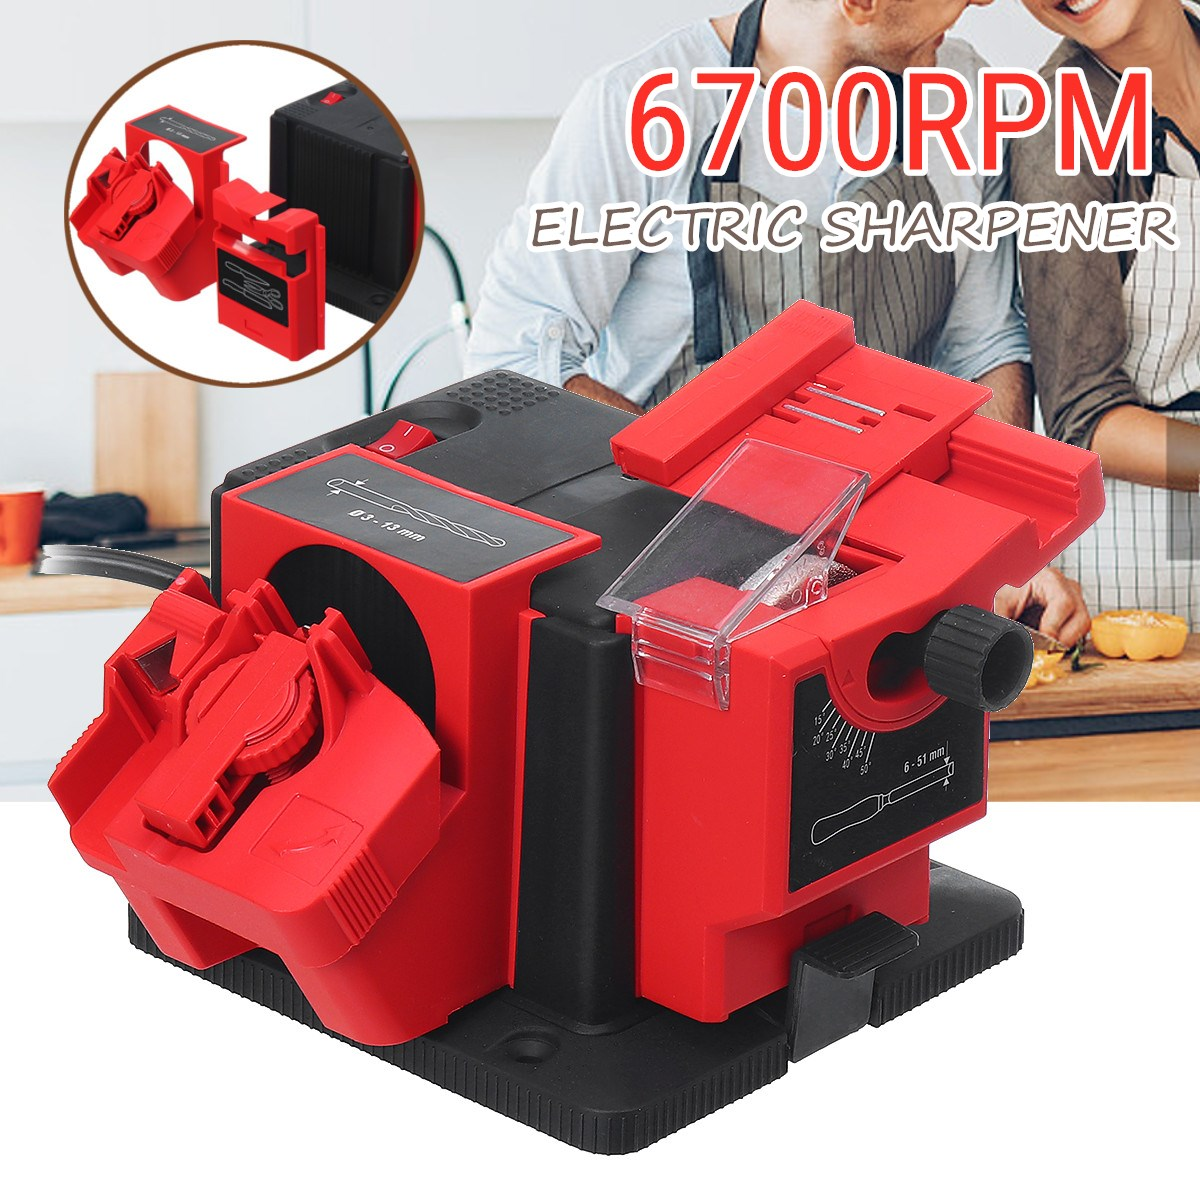 Multifunction Electric Knife Sharpener Drill Sharpening Machine Knife & Scissor Sharpener Household Grinding Tools